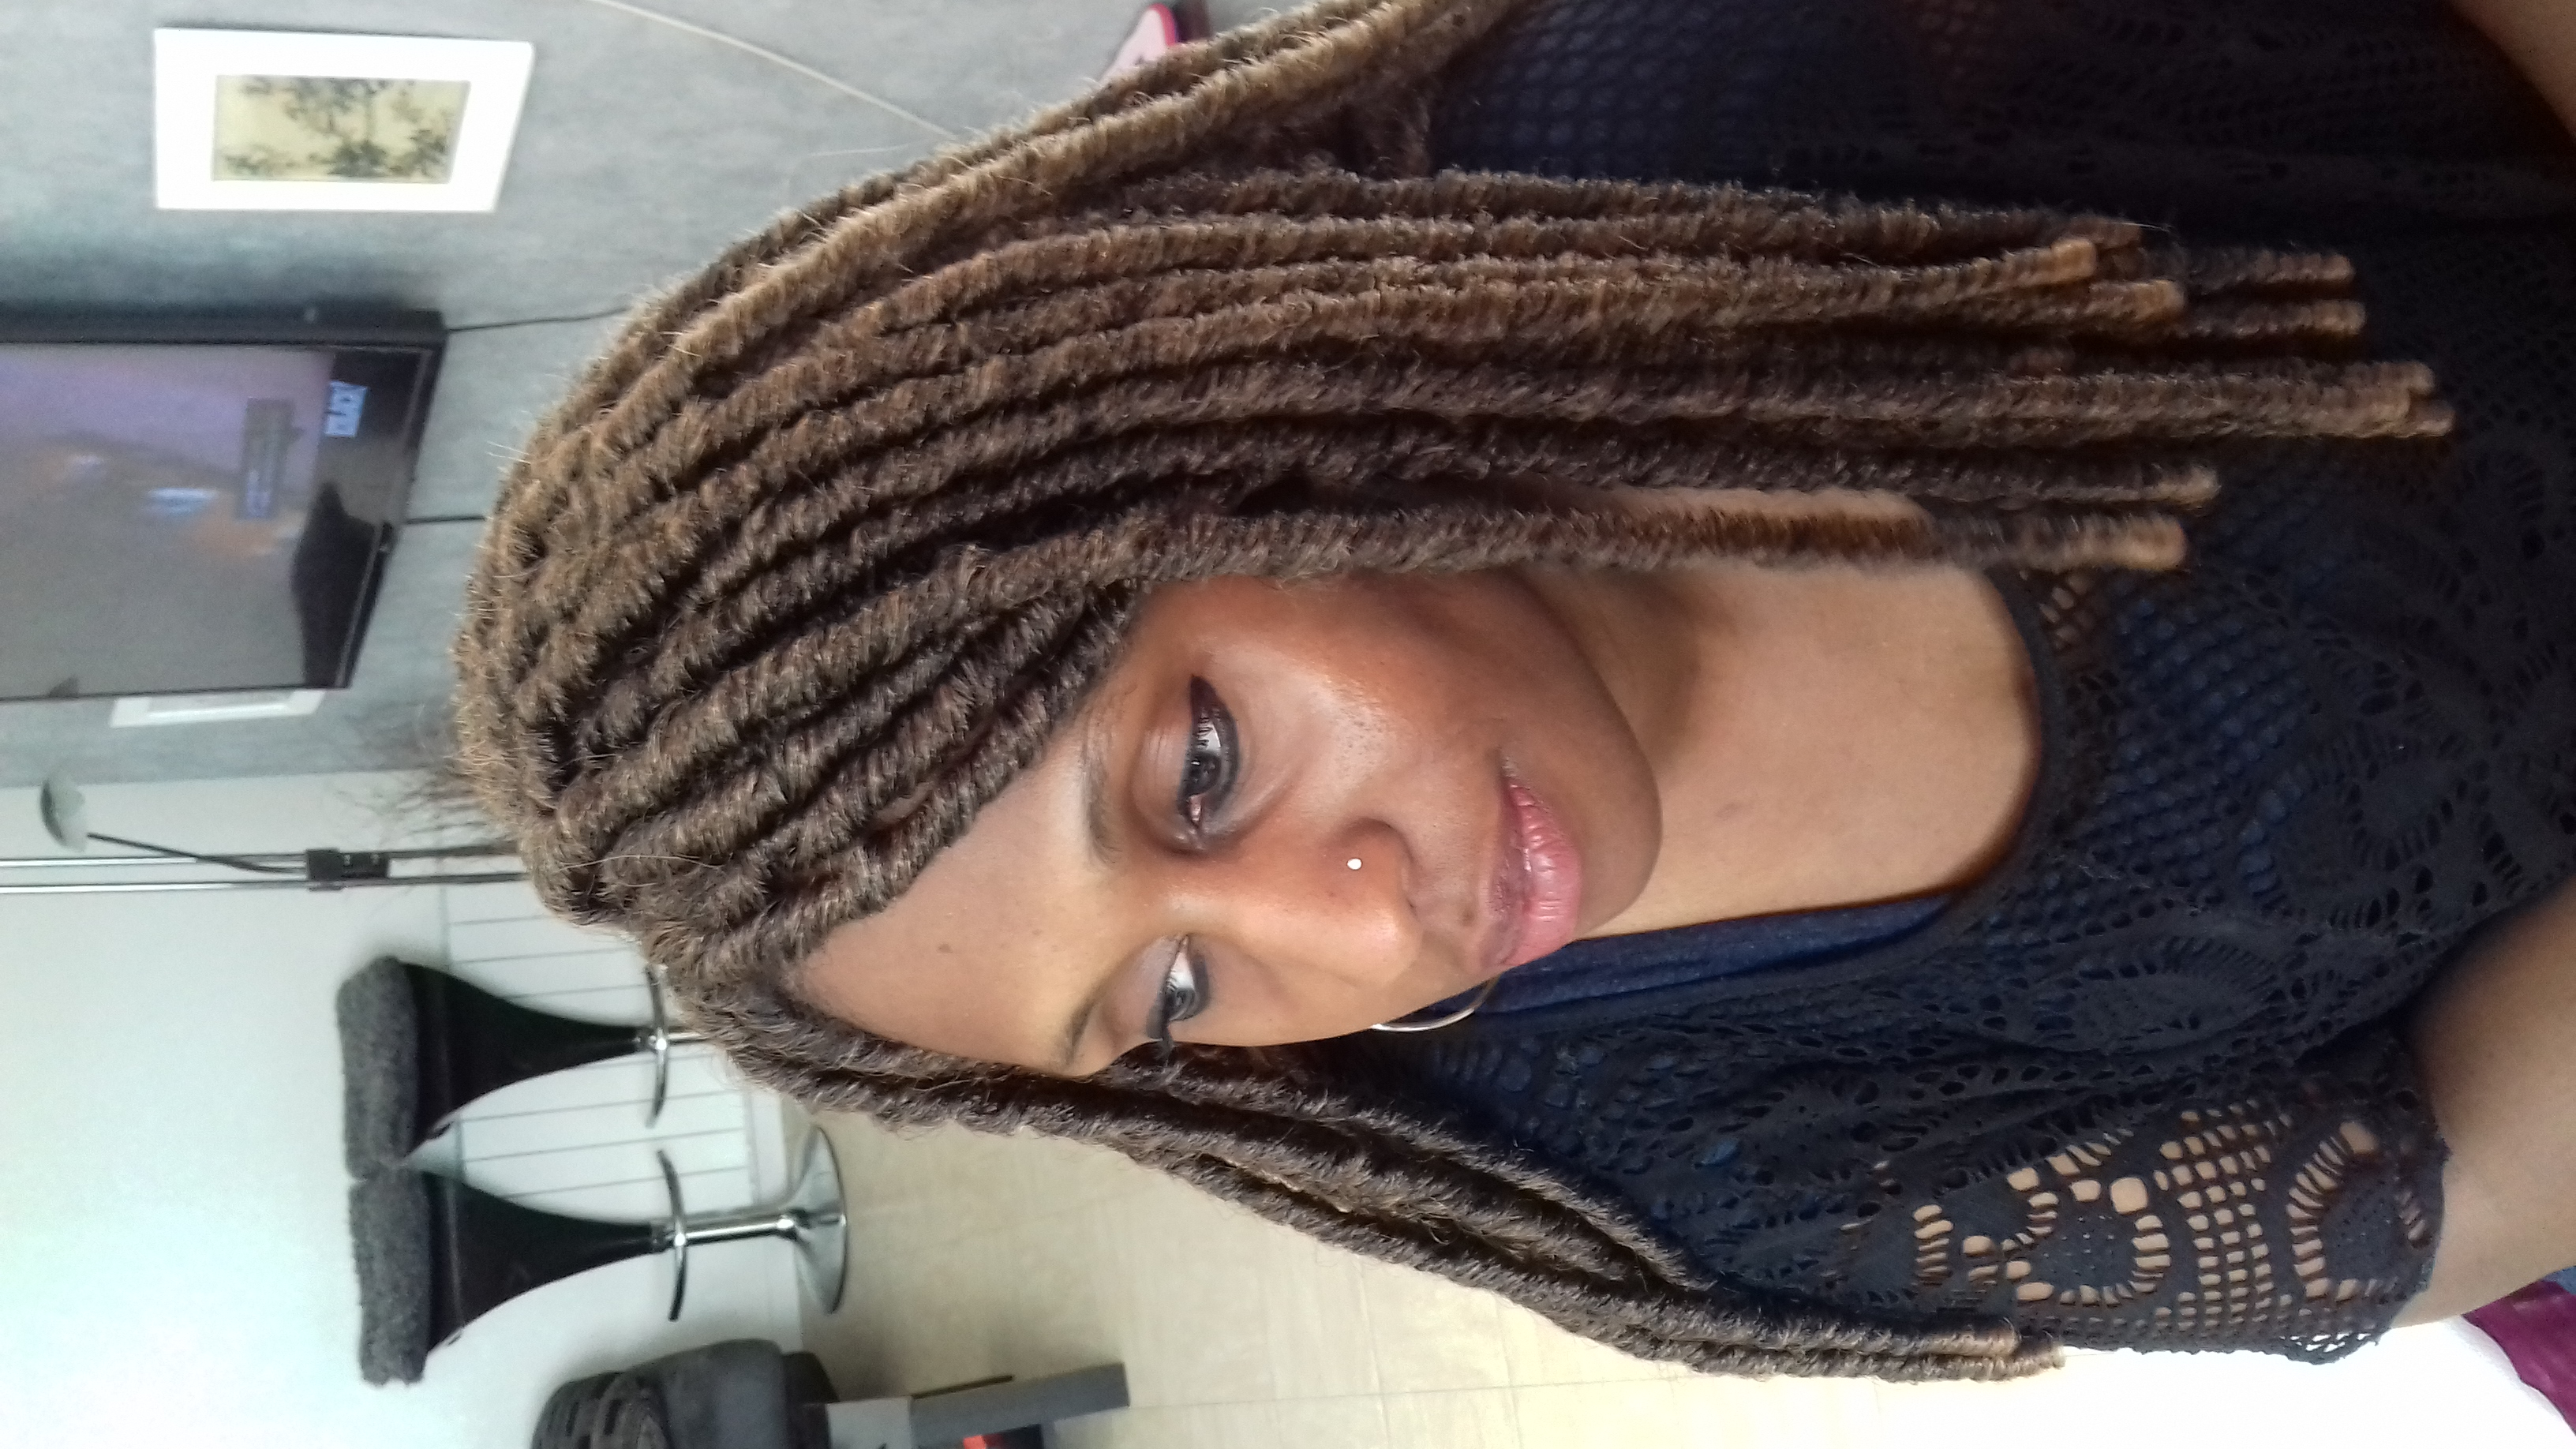 salon de coiffure afro tresse tresses box braids crochet braids vanilles tissages paris 75 77 78 91 92 93 94 95 APCHNBNS